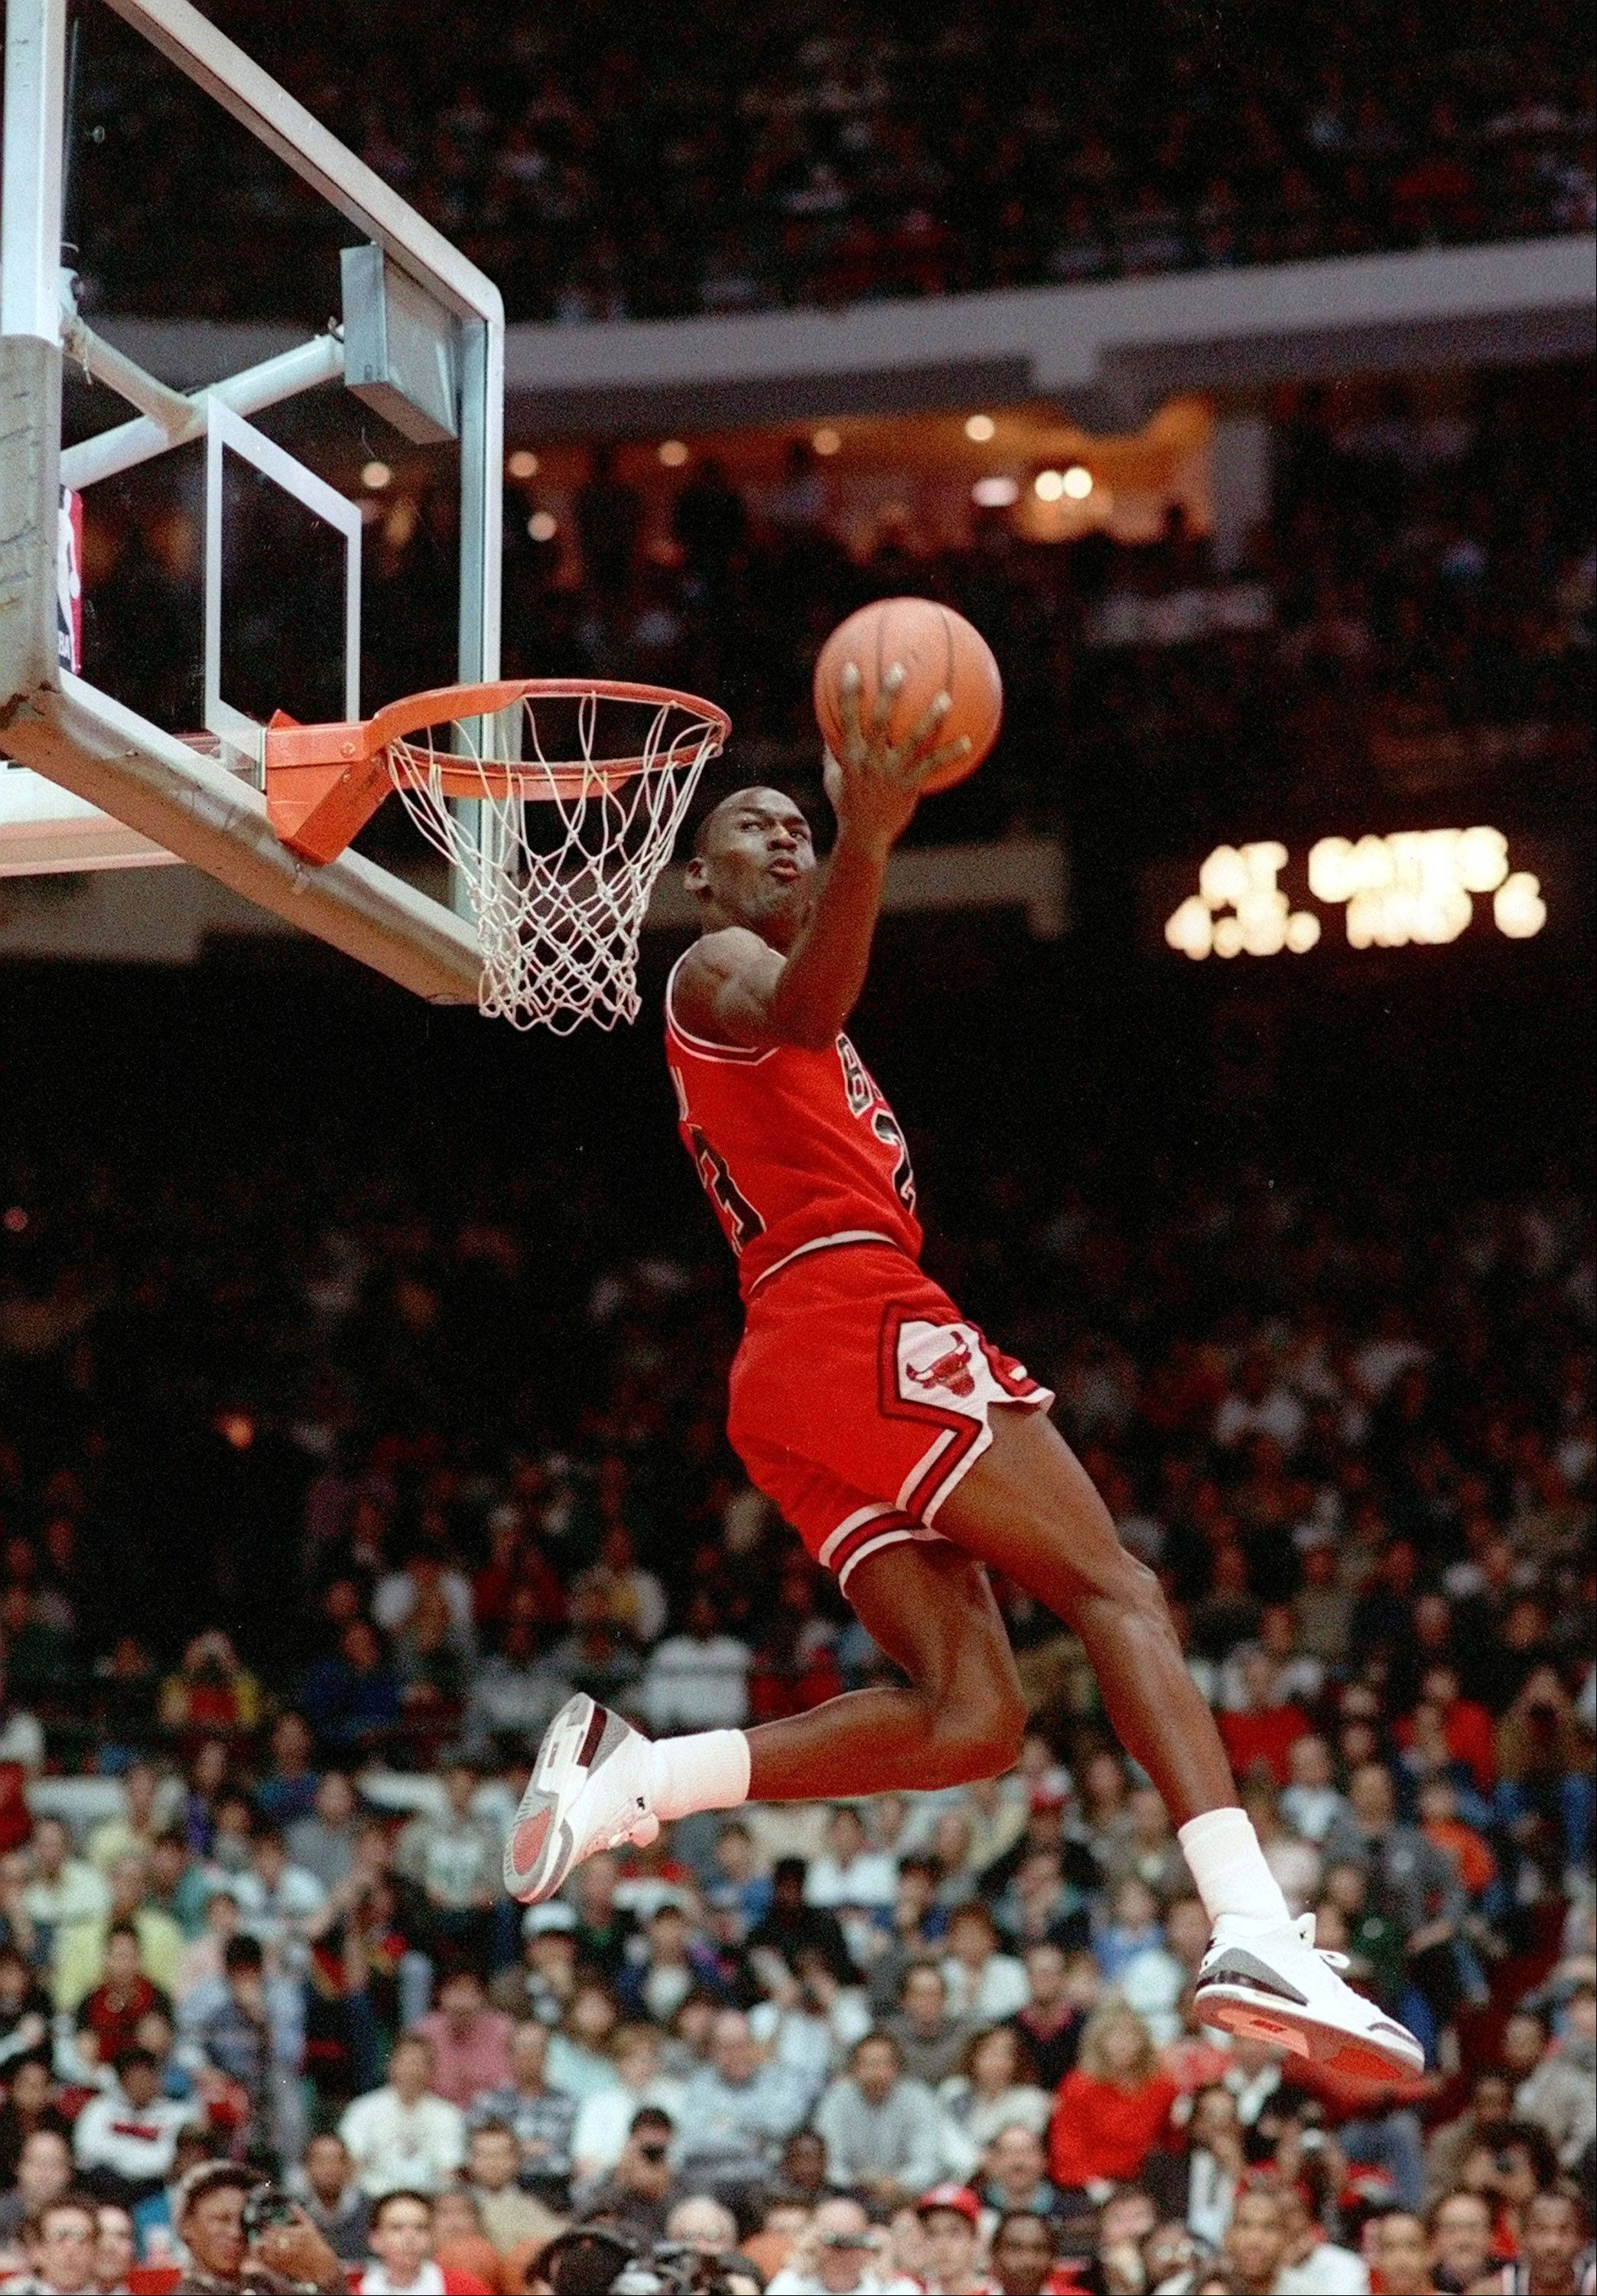 In this Feb. 6, 1988 file photo, Michael Jordan of the Chicago Bulls dunks during the slam-dunk competition of the NBA All-Star weekend in Chicago, Ill. On Friday, Sept. 11, 2009, Jordan will be enshrined at the Basketball Hall of Fame.